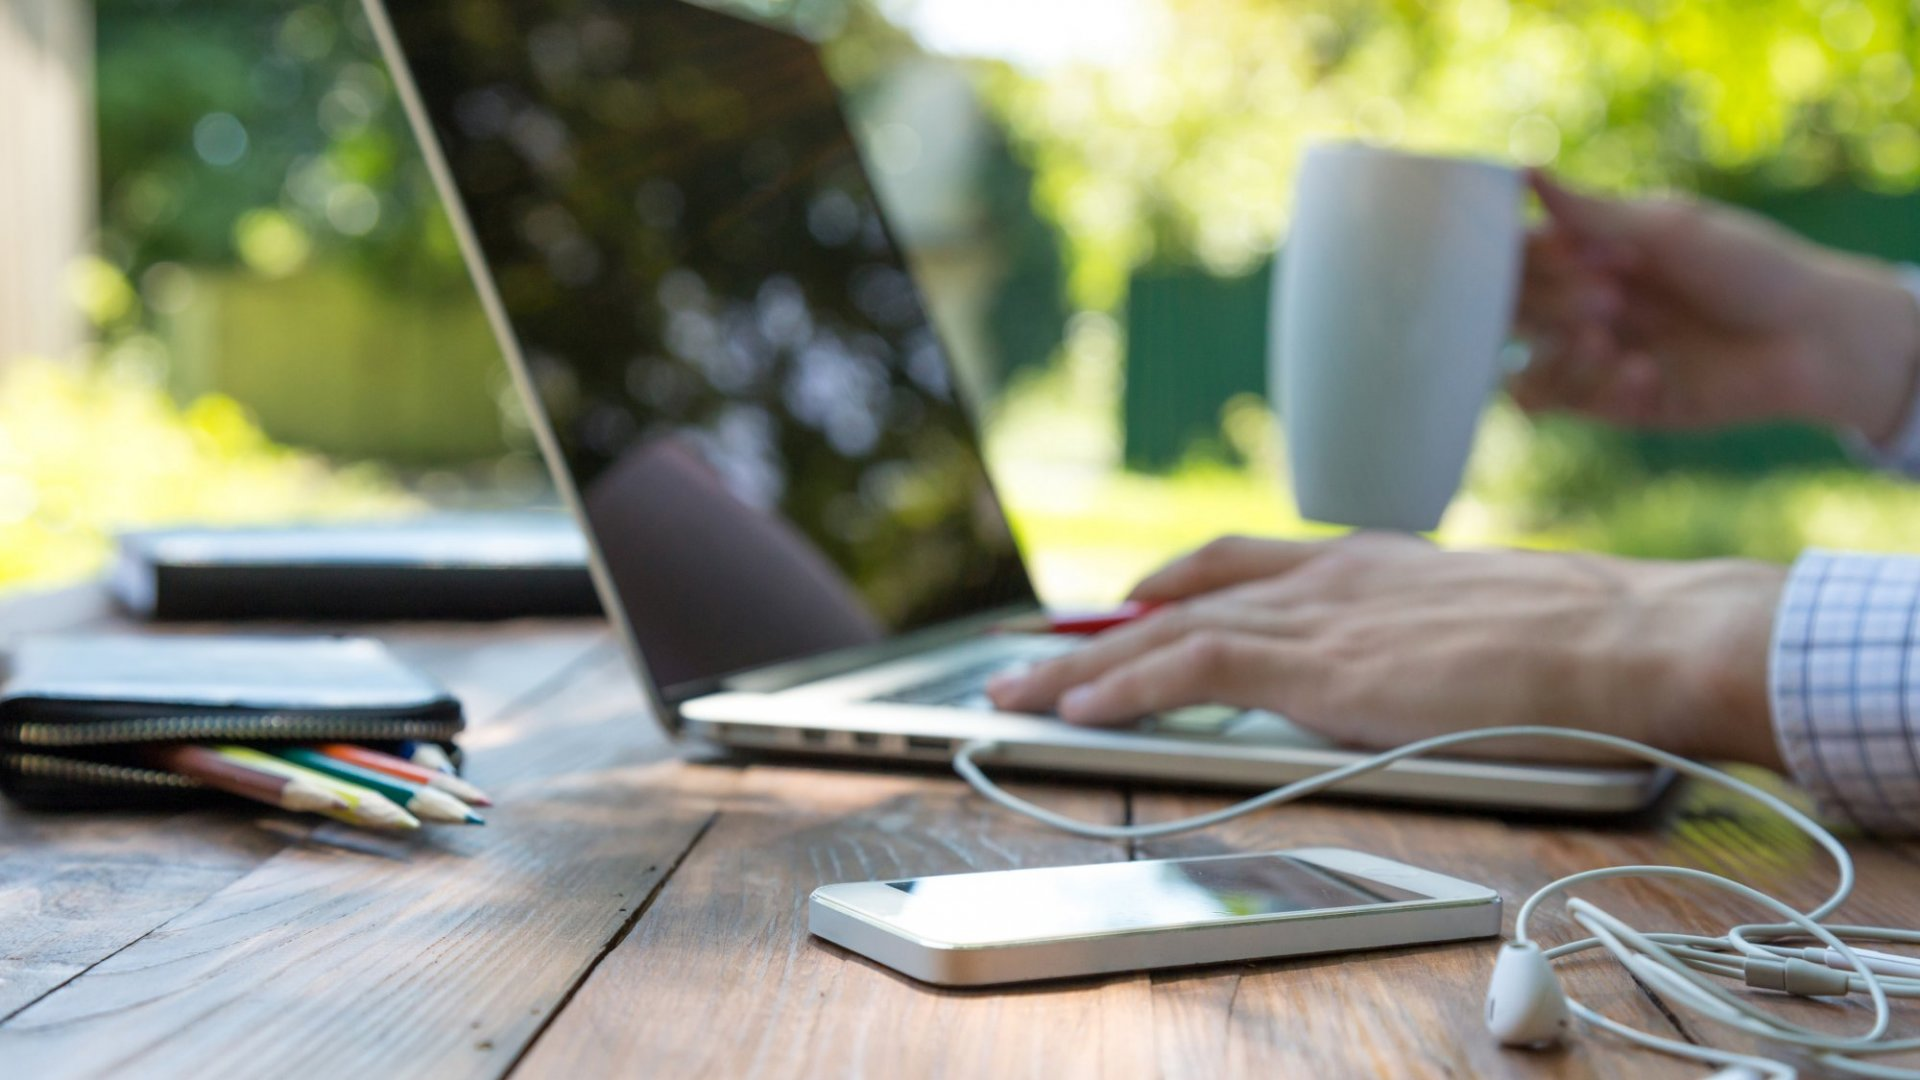 Working From Home Is One of the Hottest Job Skills in America. Here Are 7 Keys to Excelling at It